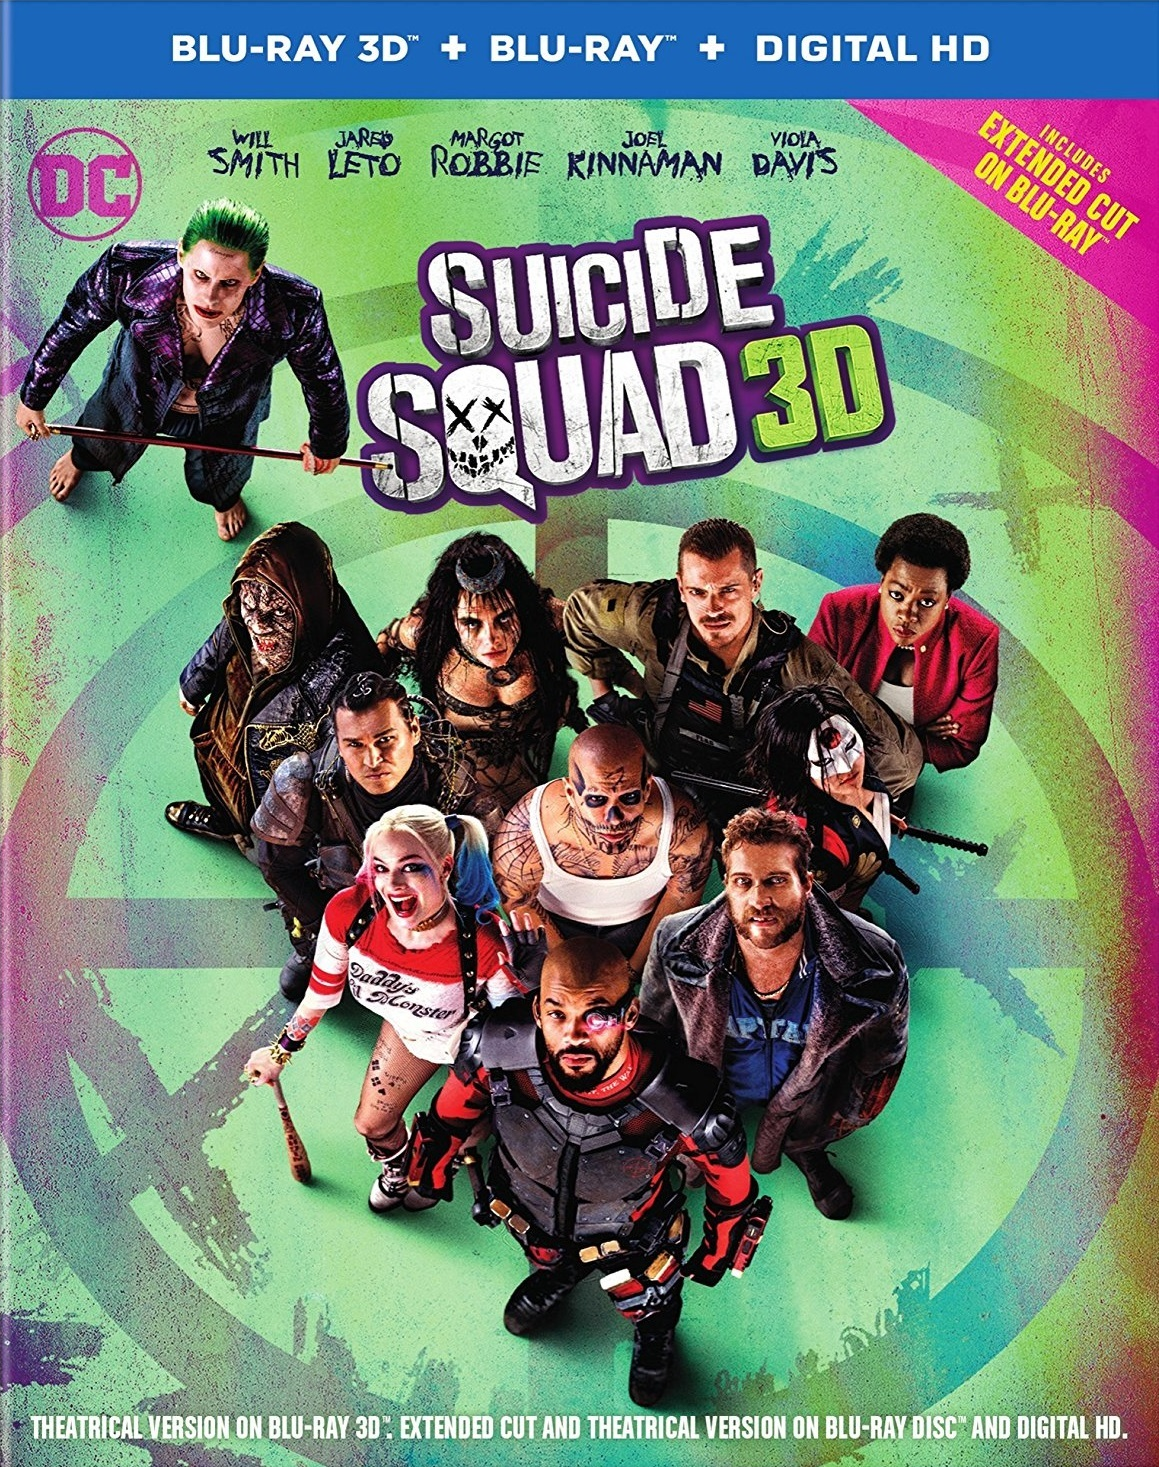 Suicide Squad (2016) poster image